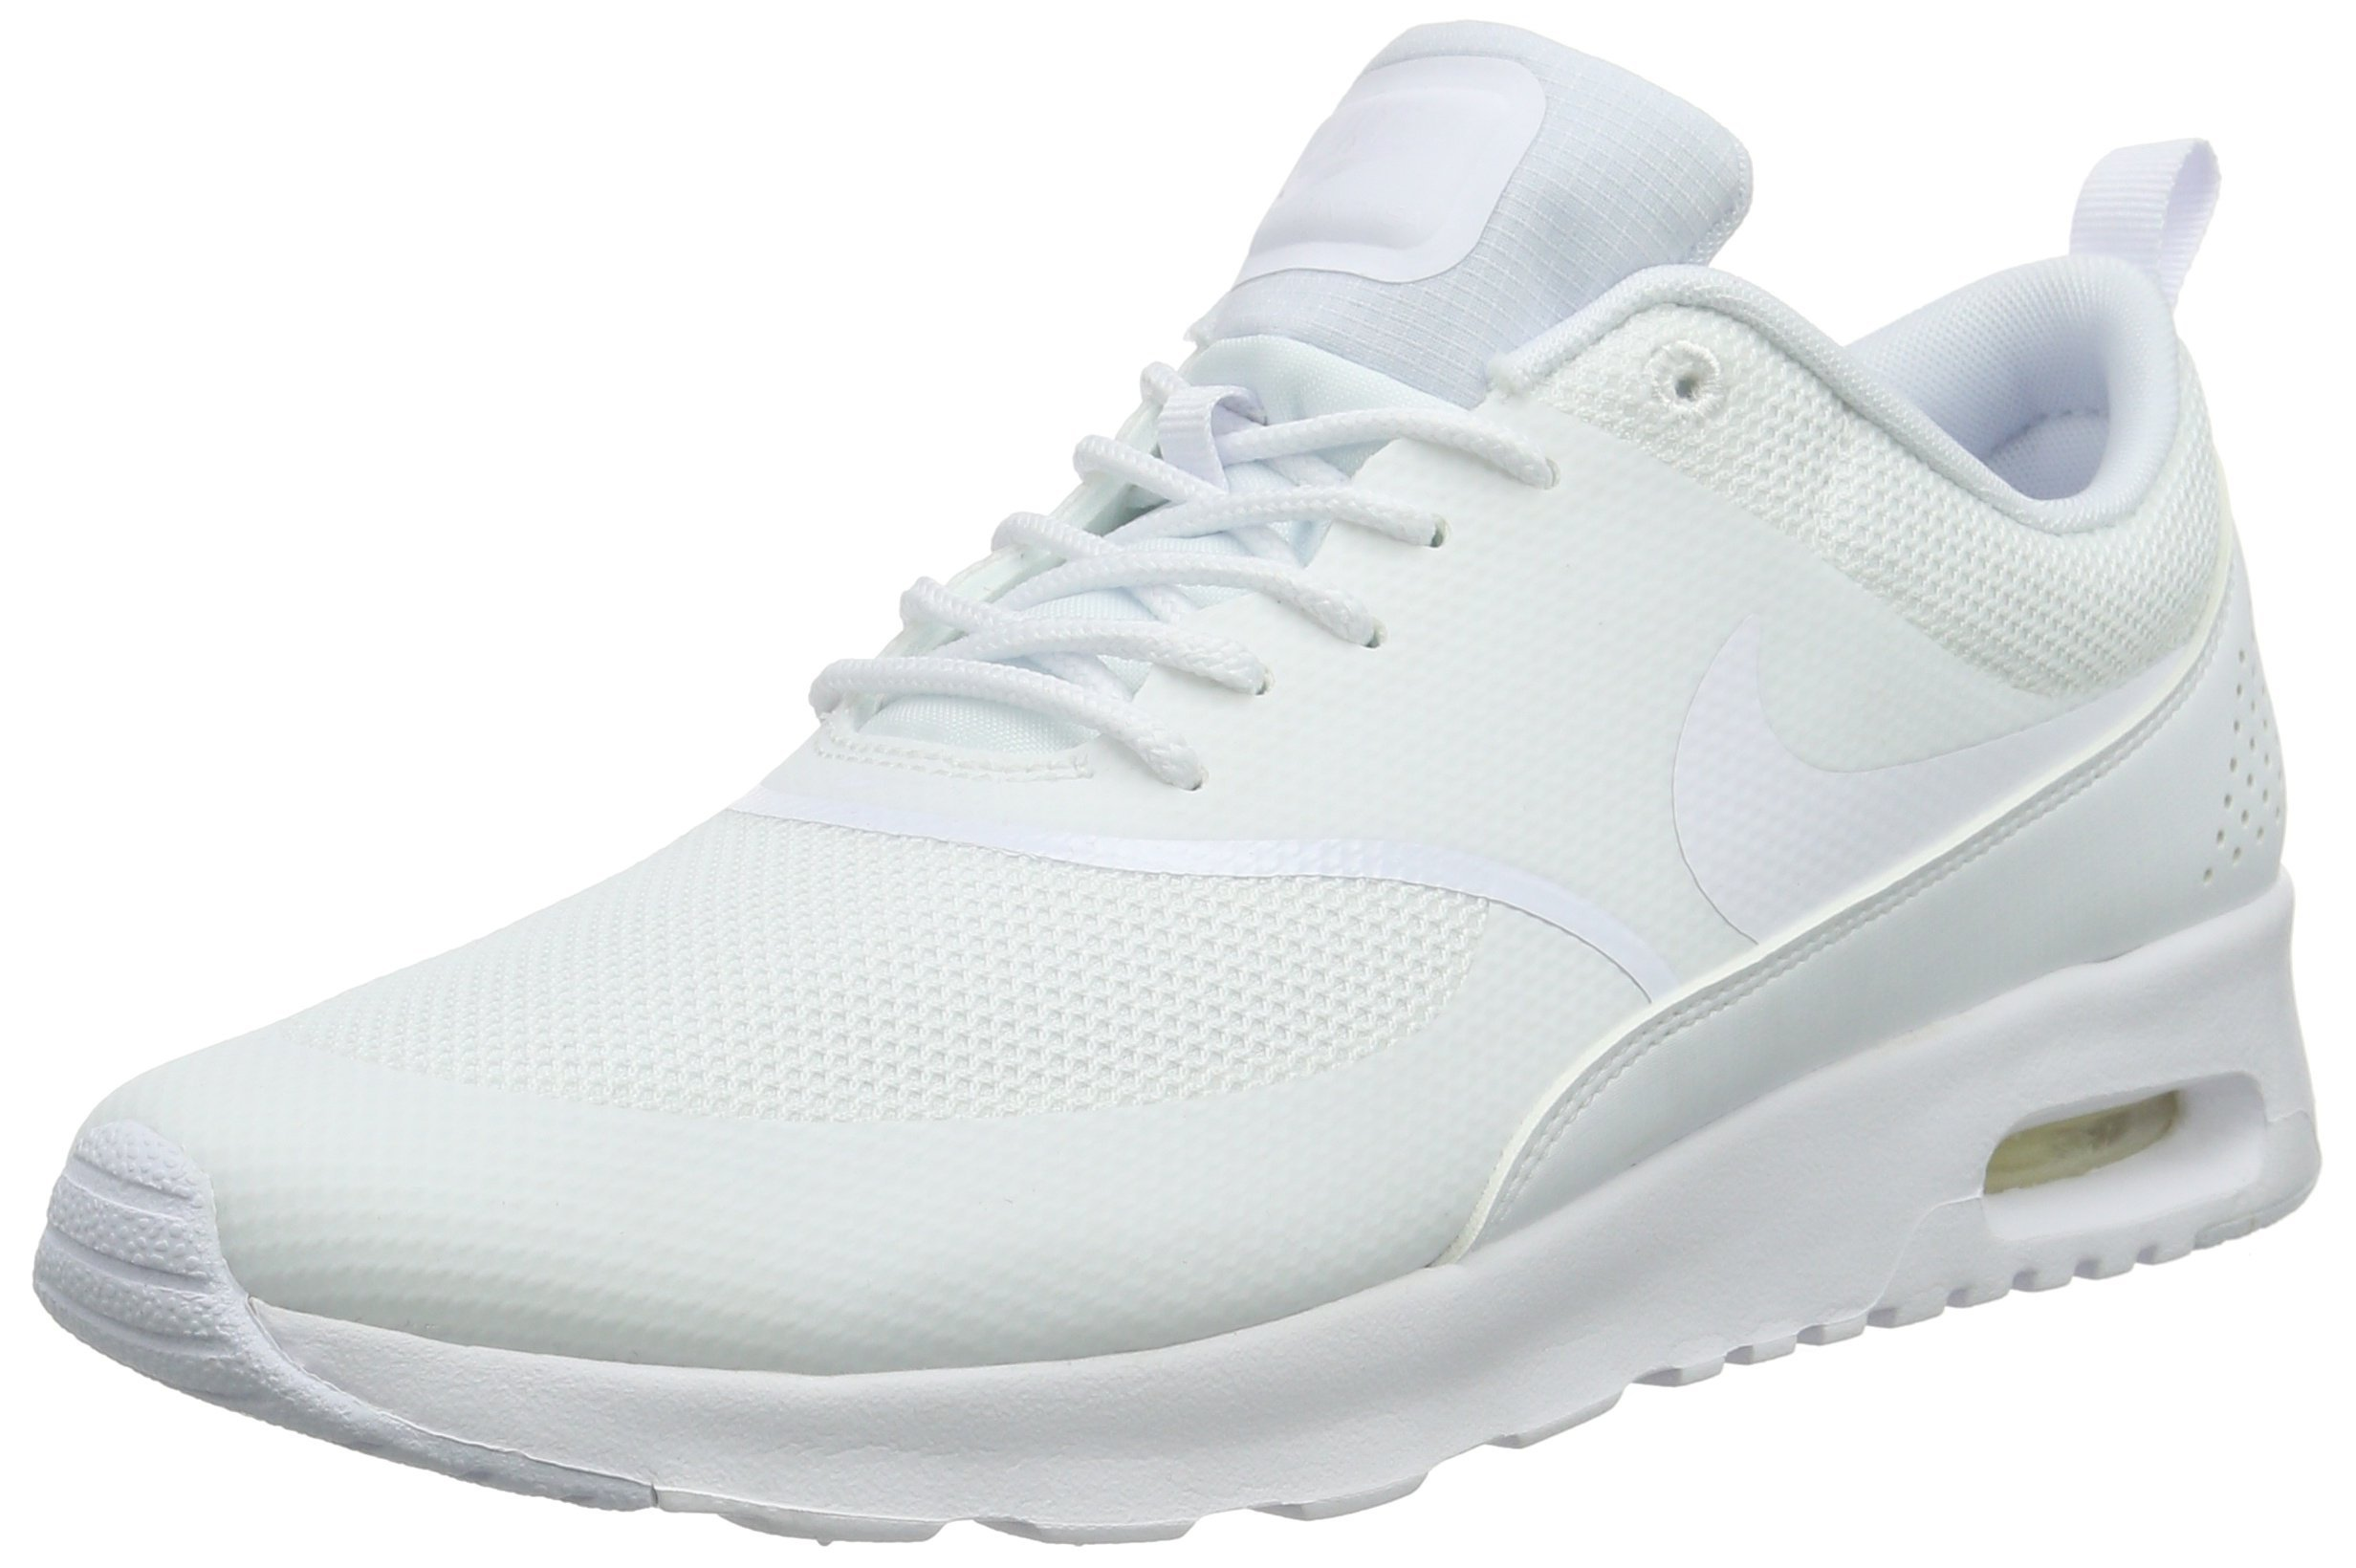 Nike Air Max Thea Womens Style: 599409-101 Size: 11 M US by NIKE